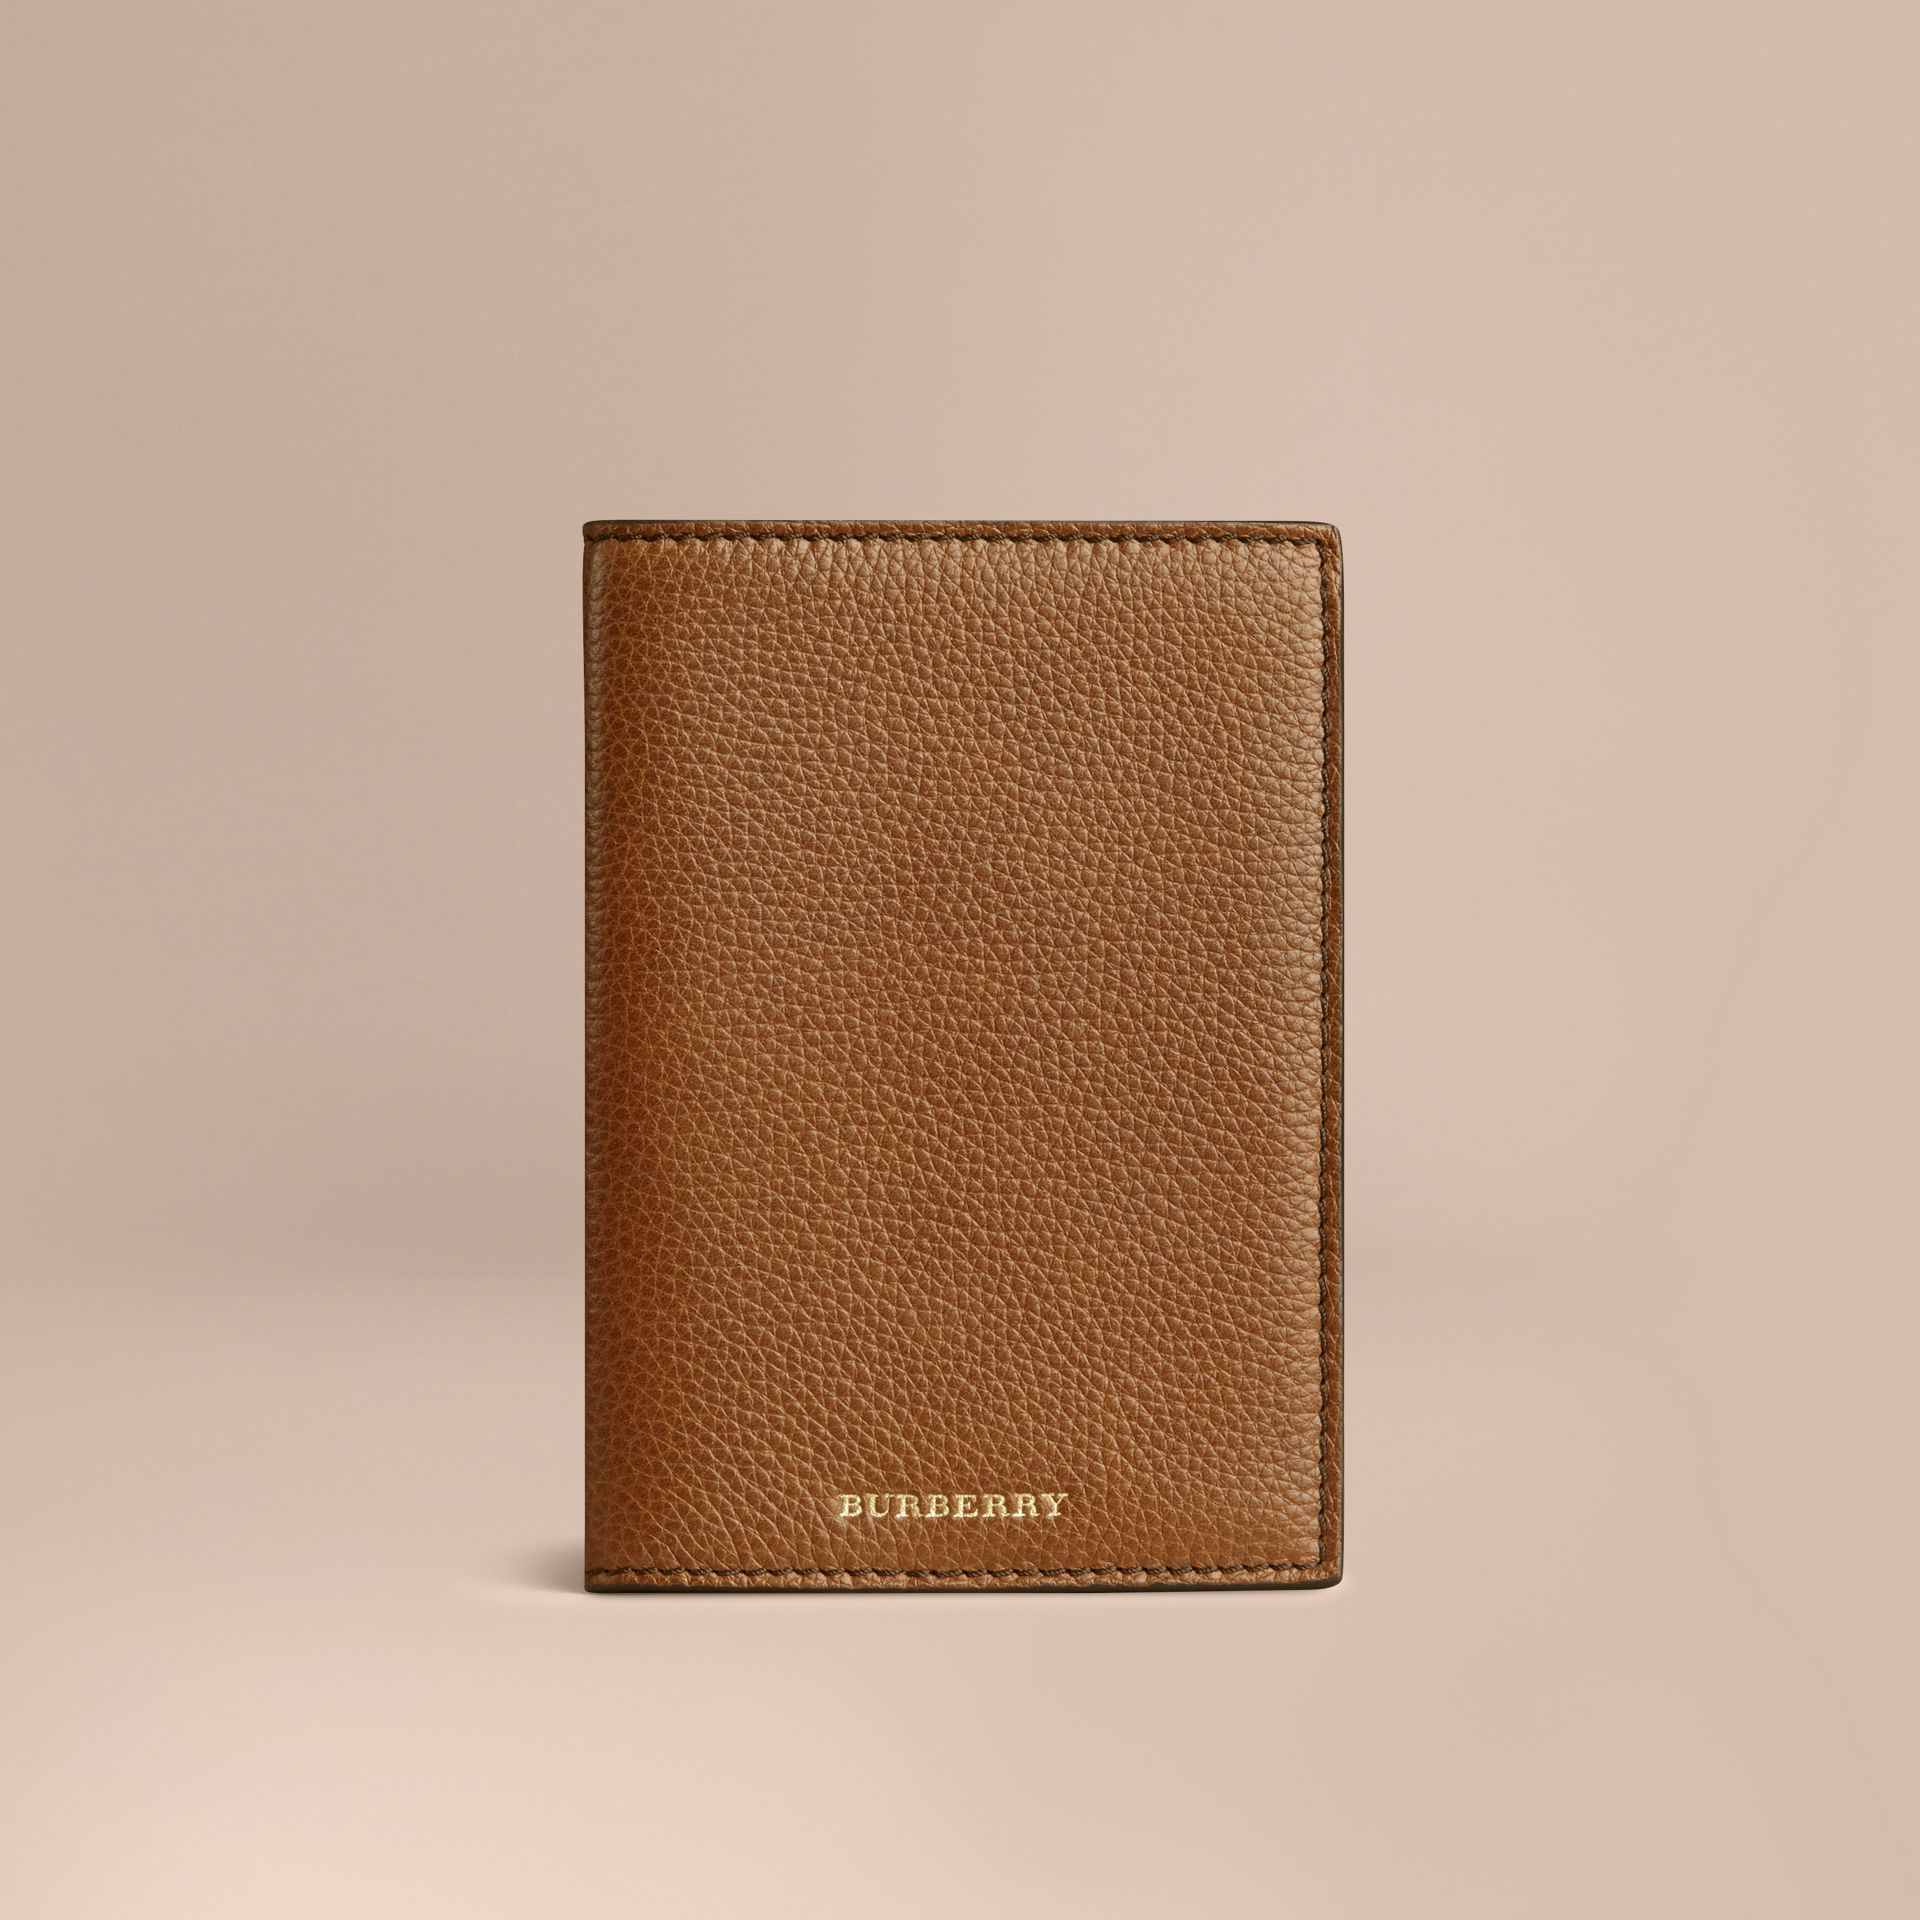 Grainy Leather Passport Cover in Tan - gallery image 1